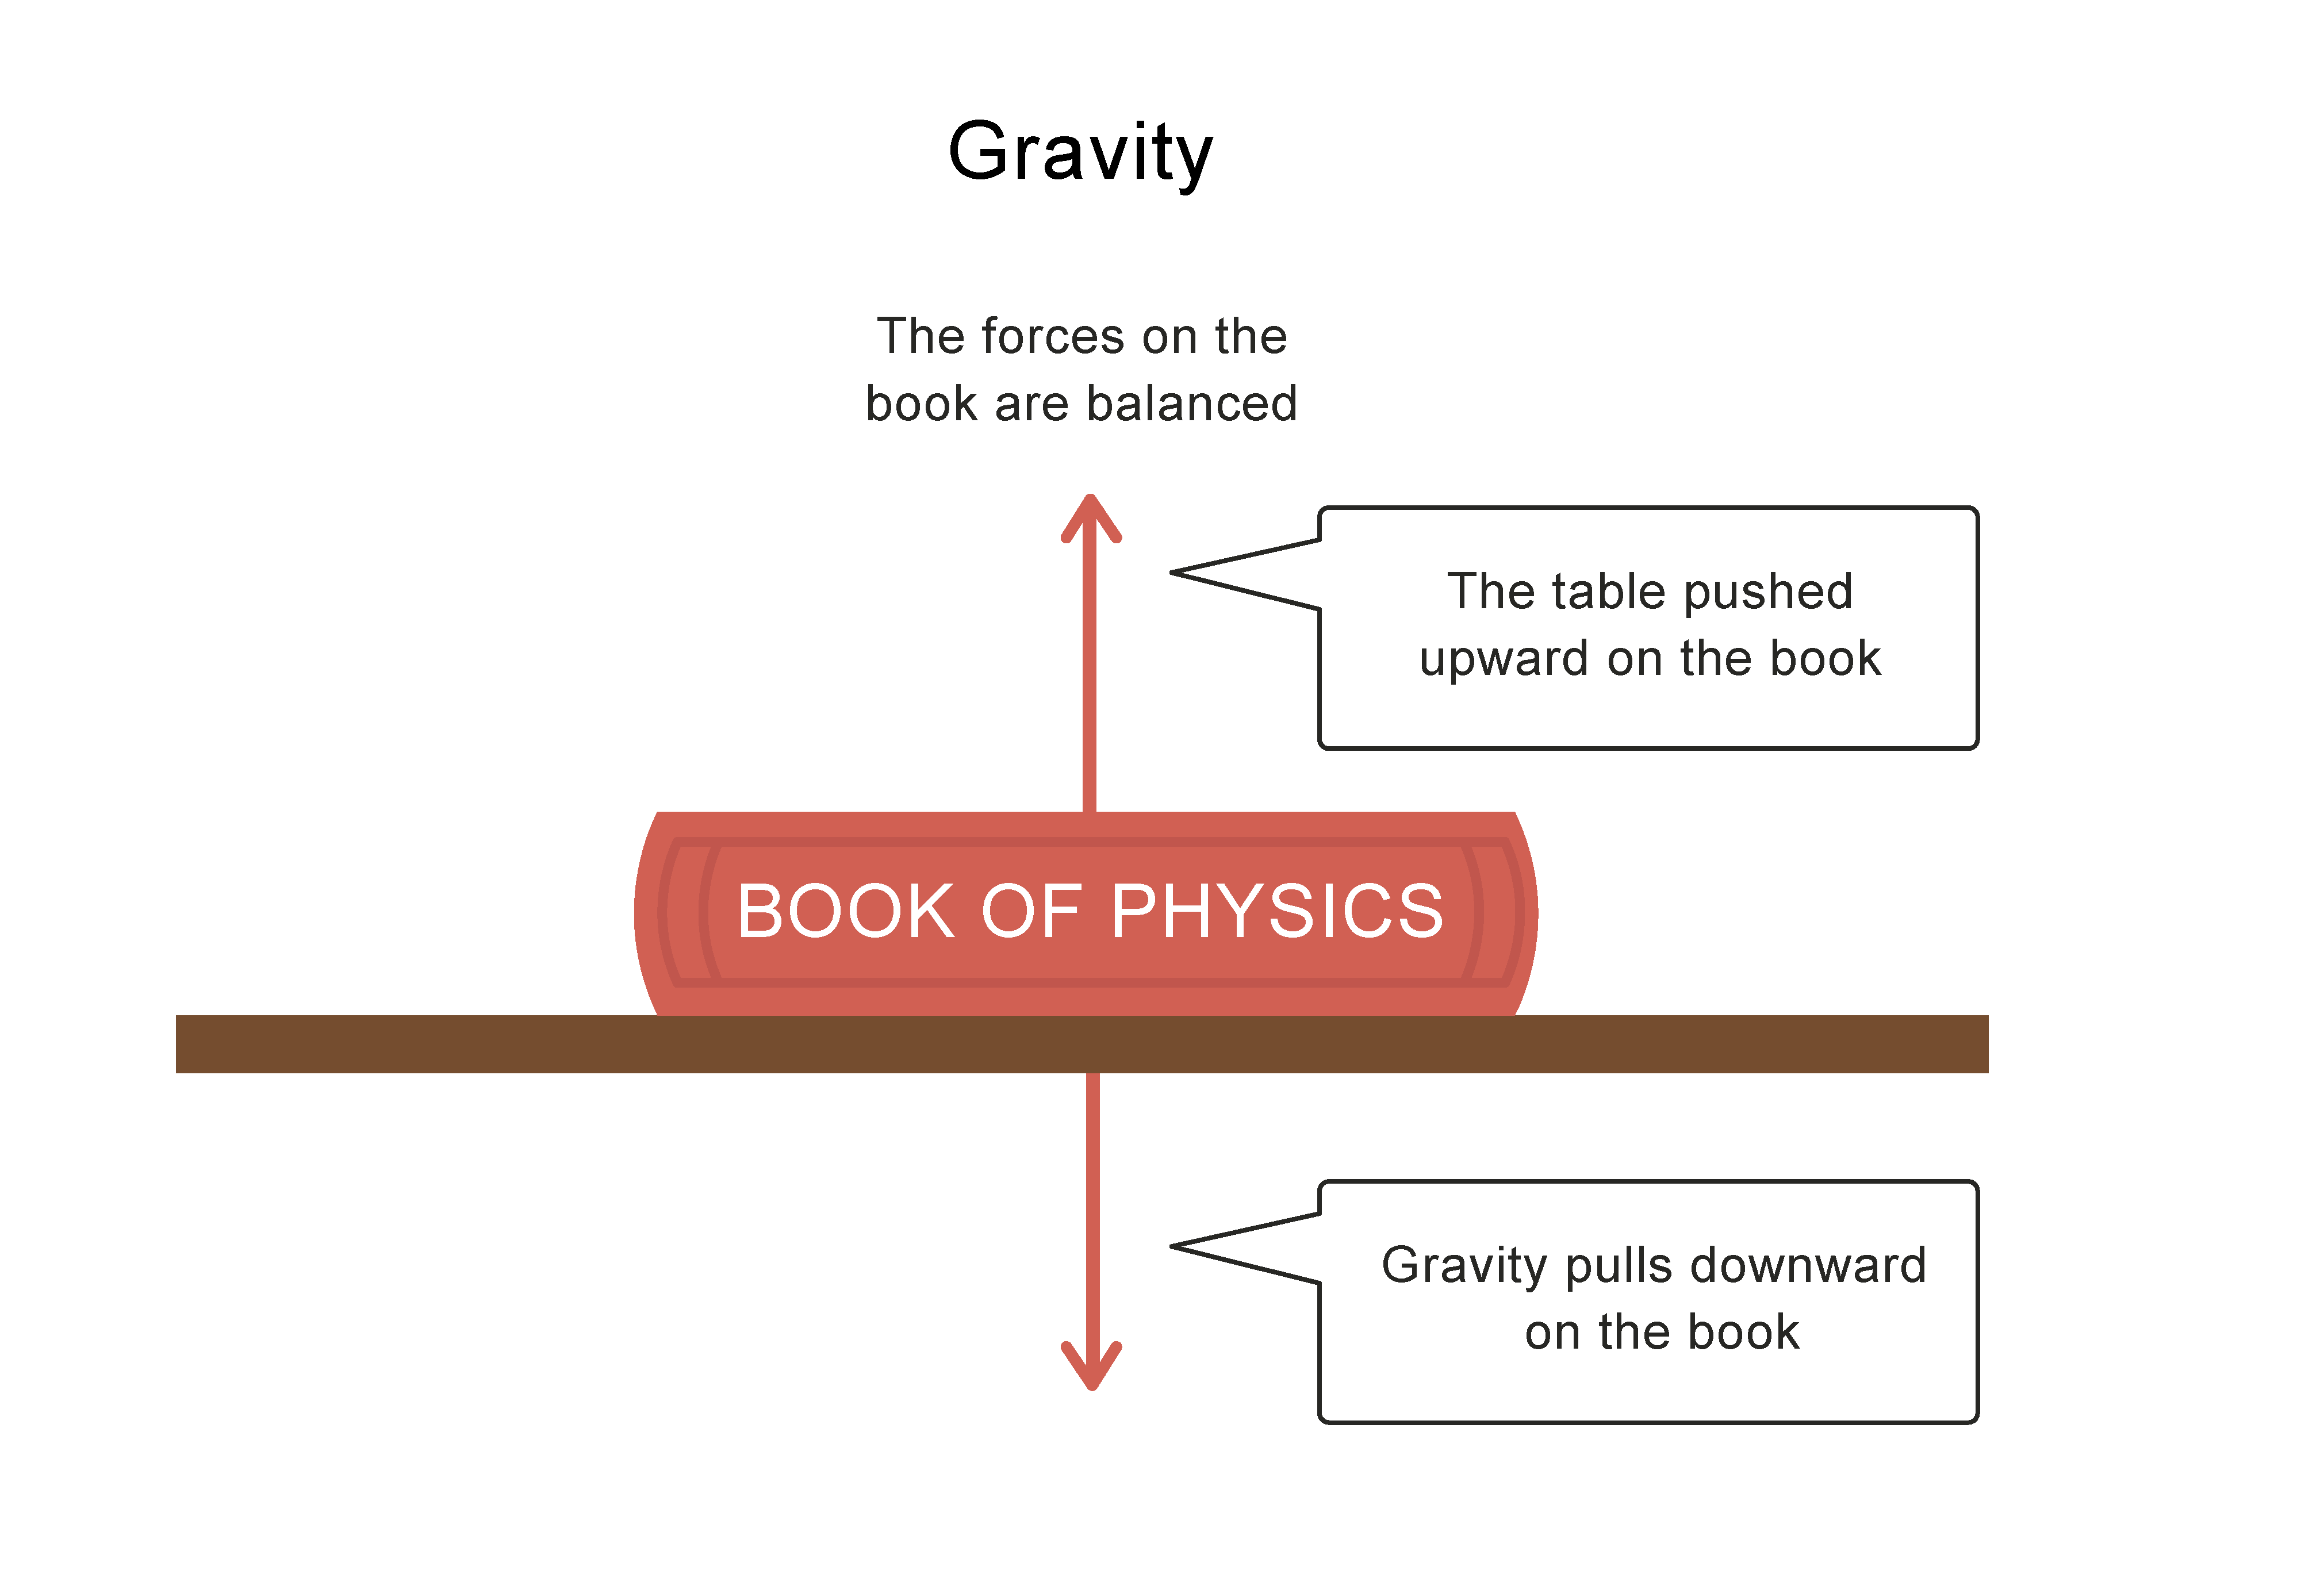 Gravity forces of book on table